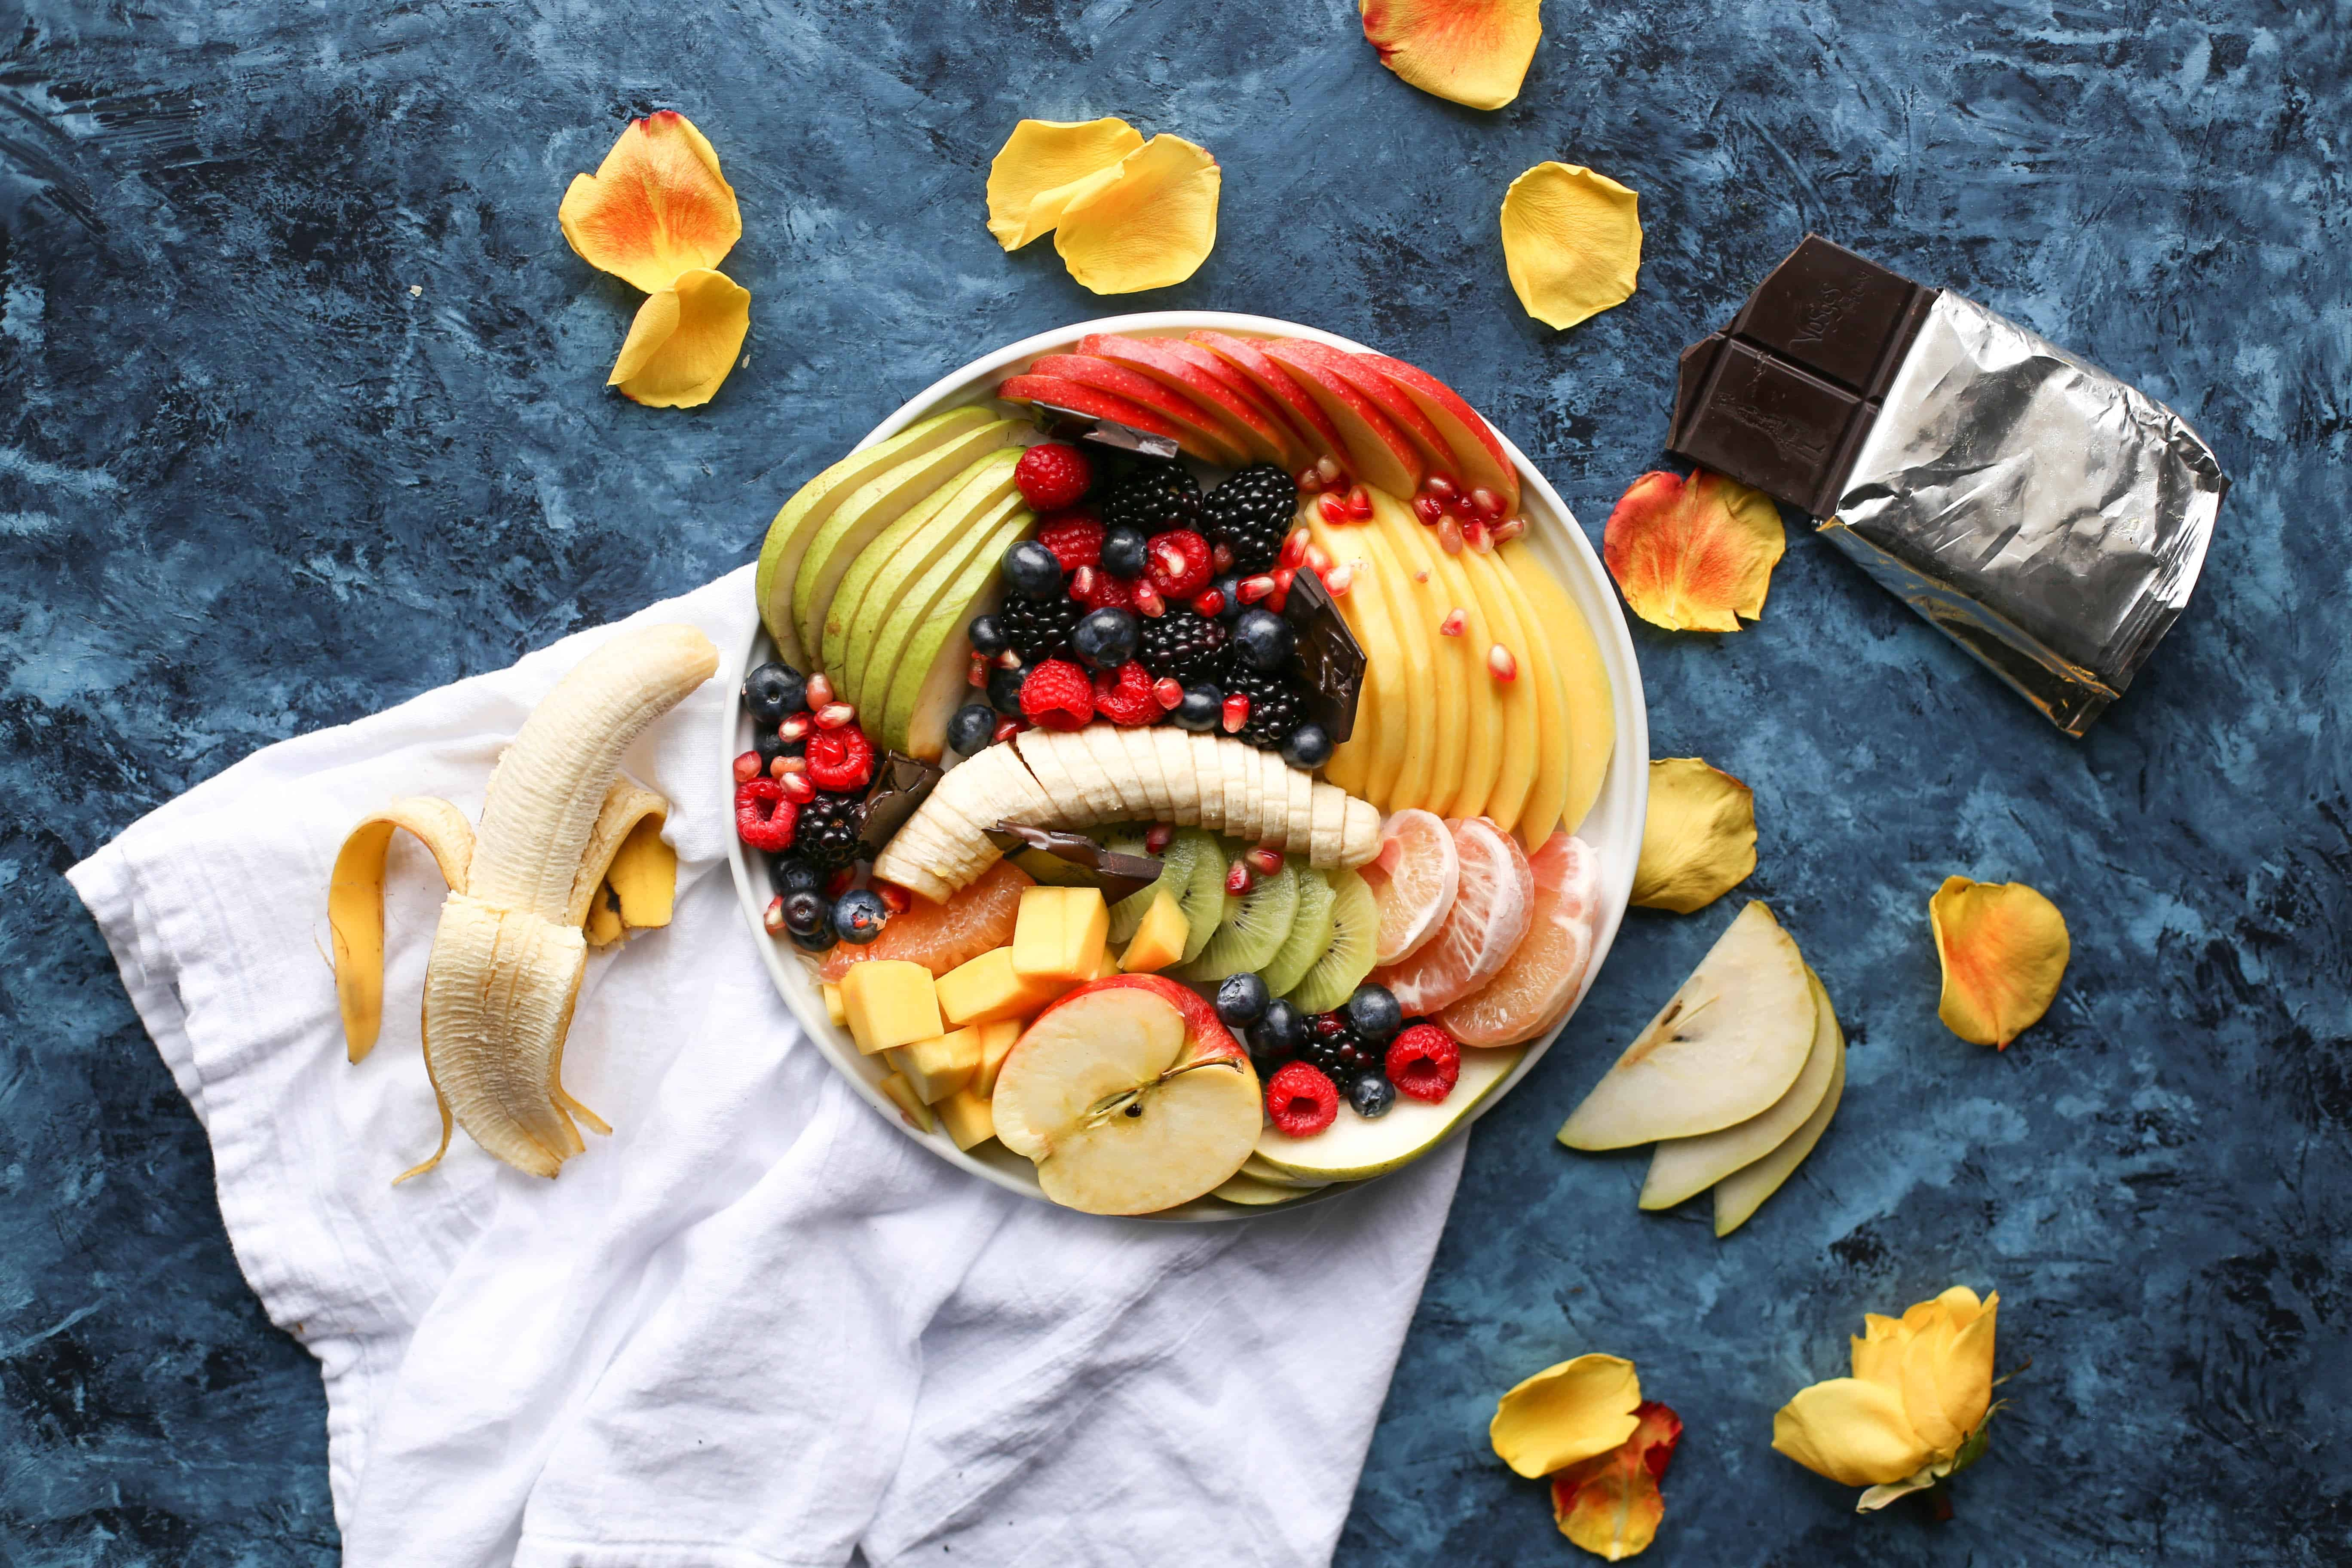 Healthy Eating Habits: The Importance